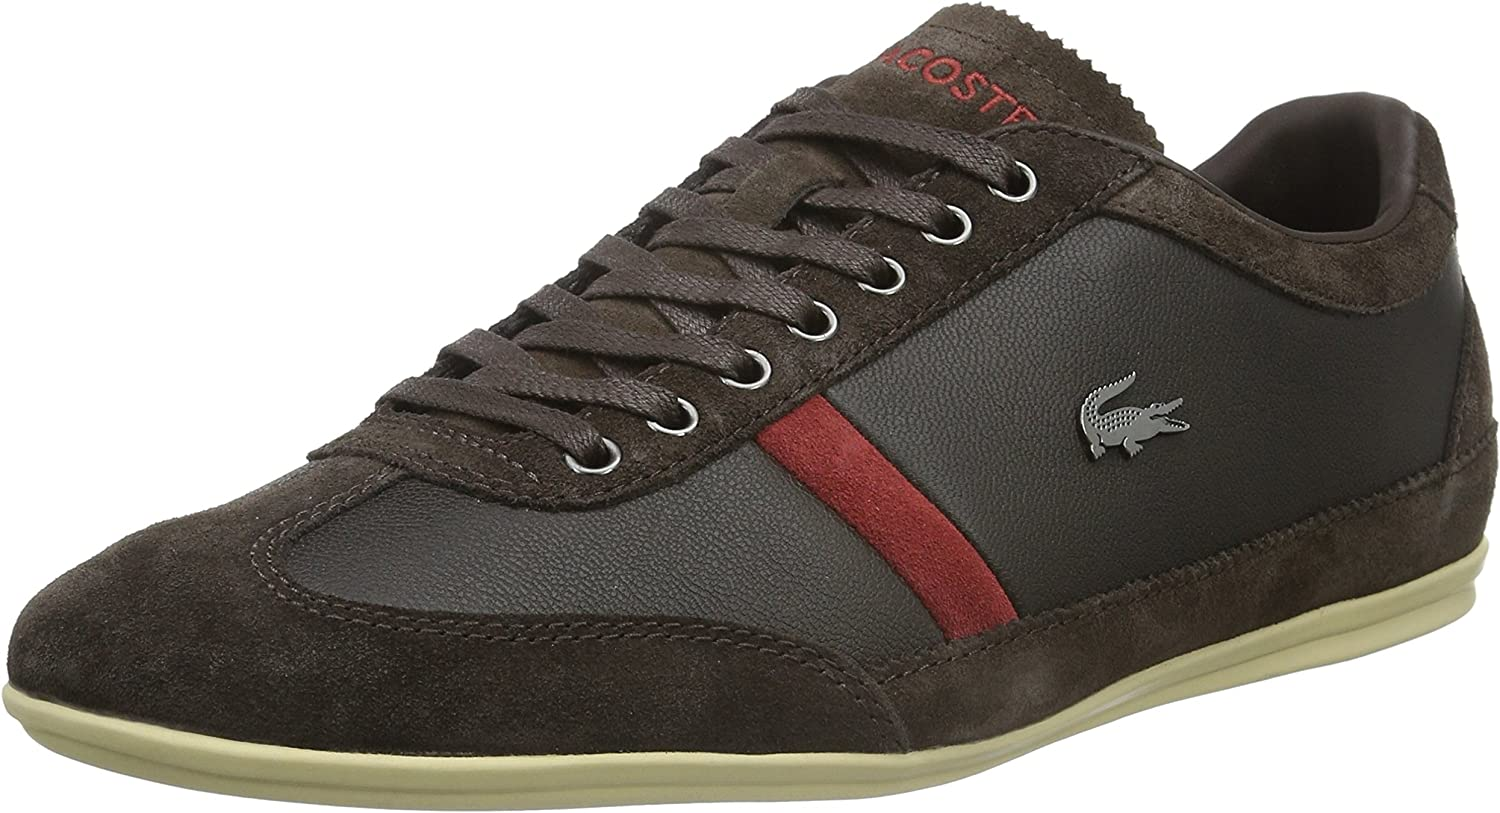 browns lacoste shoes